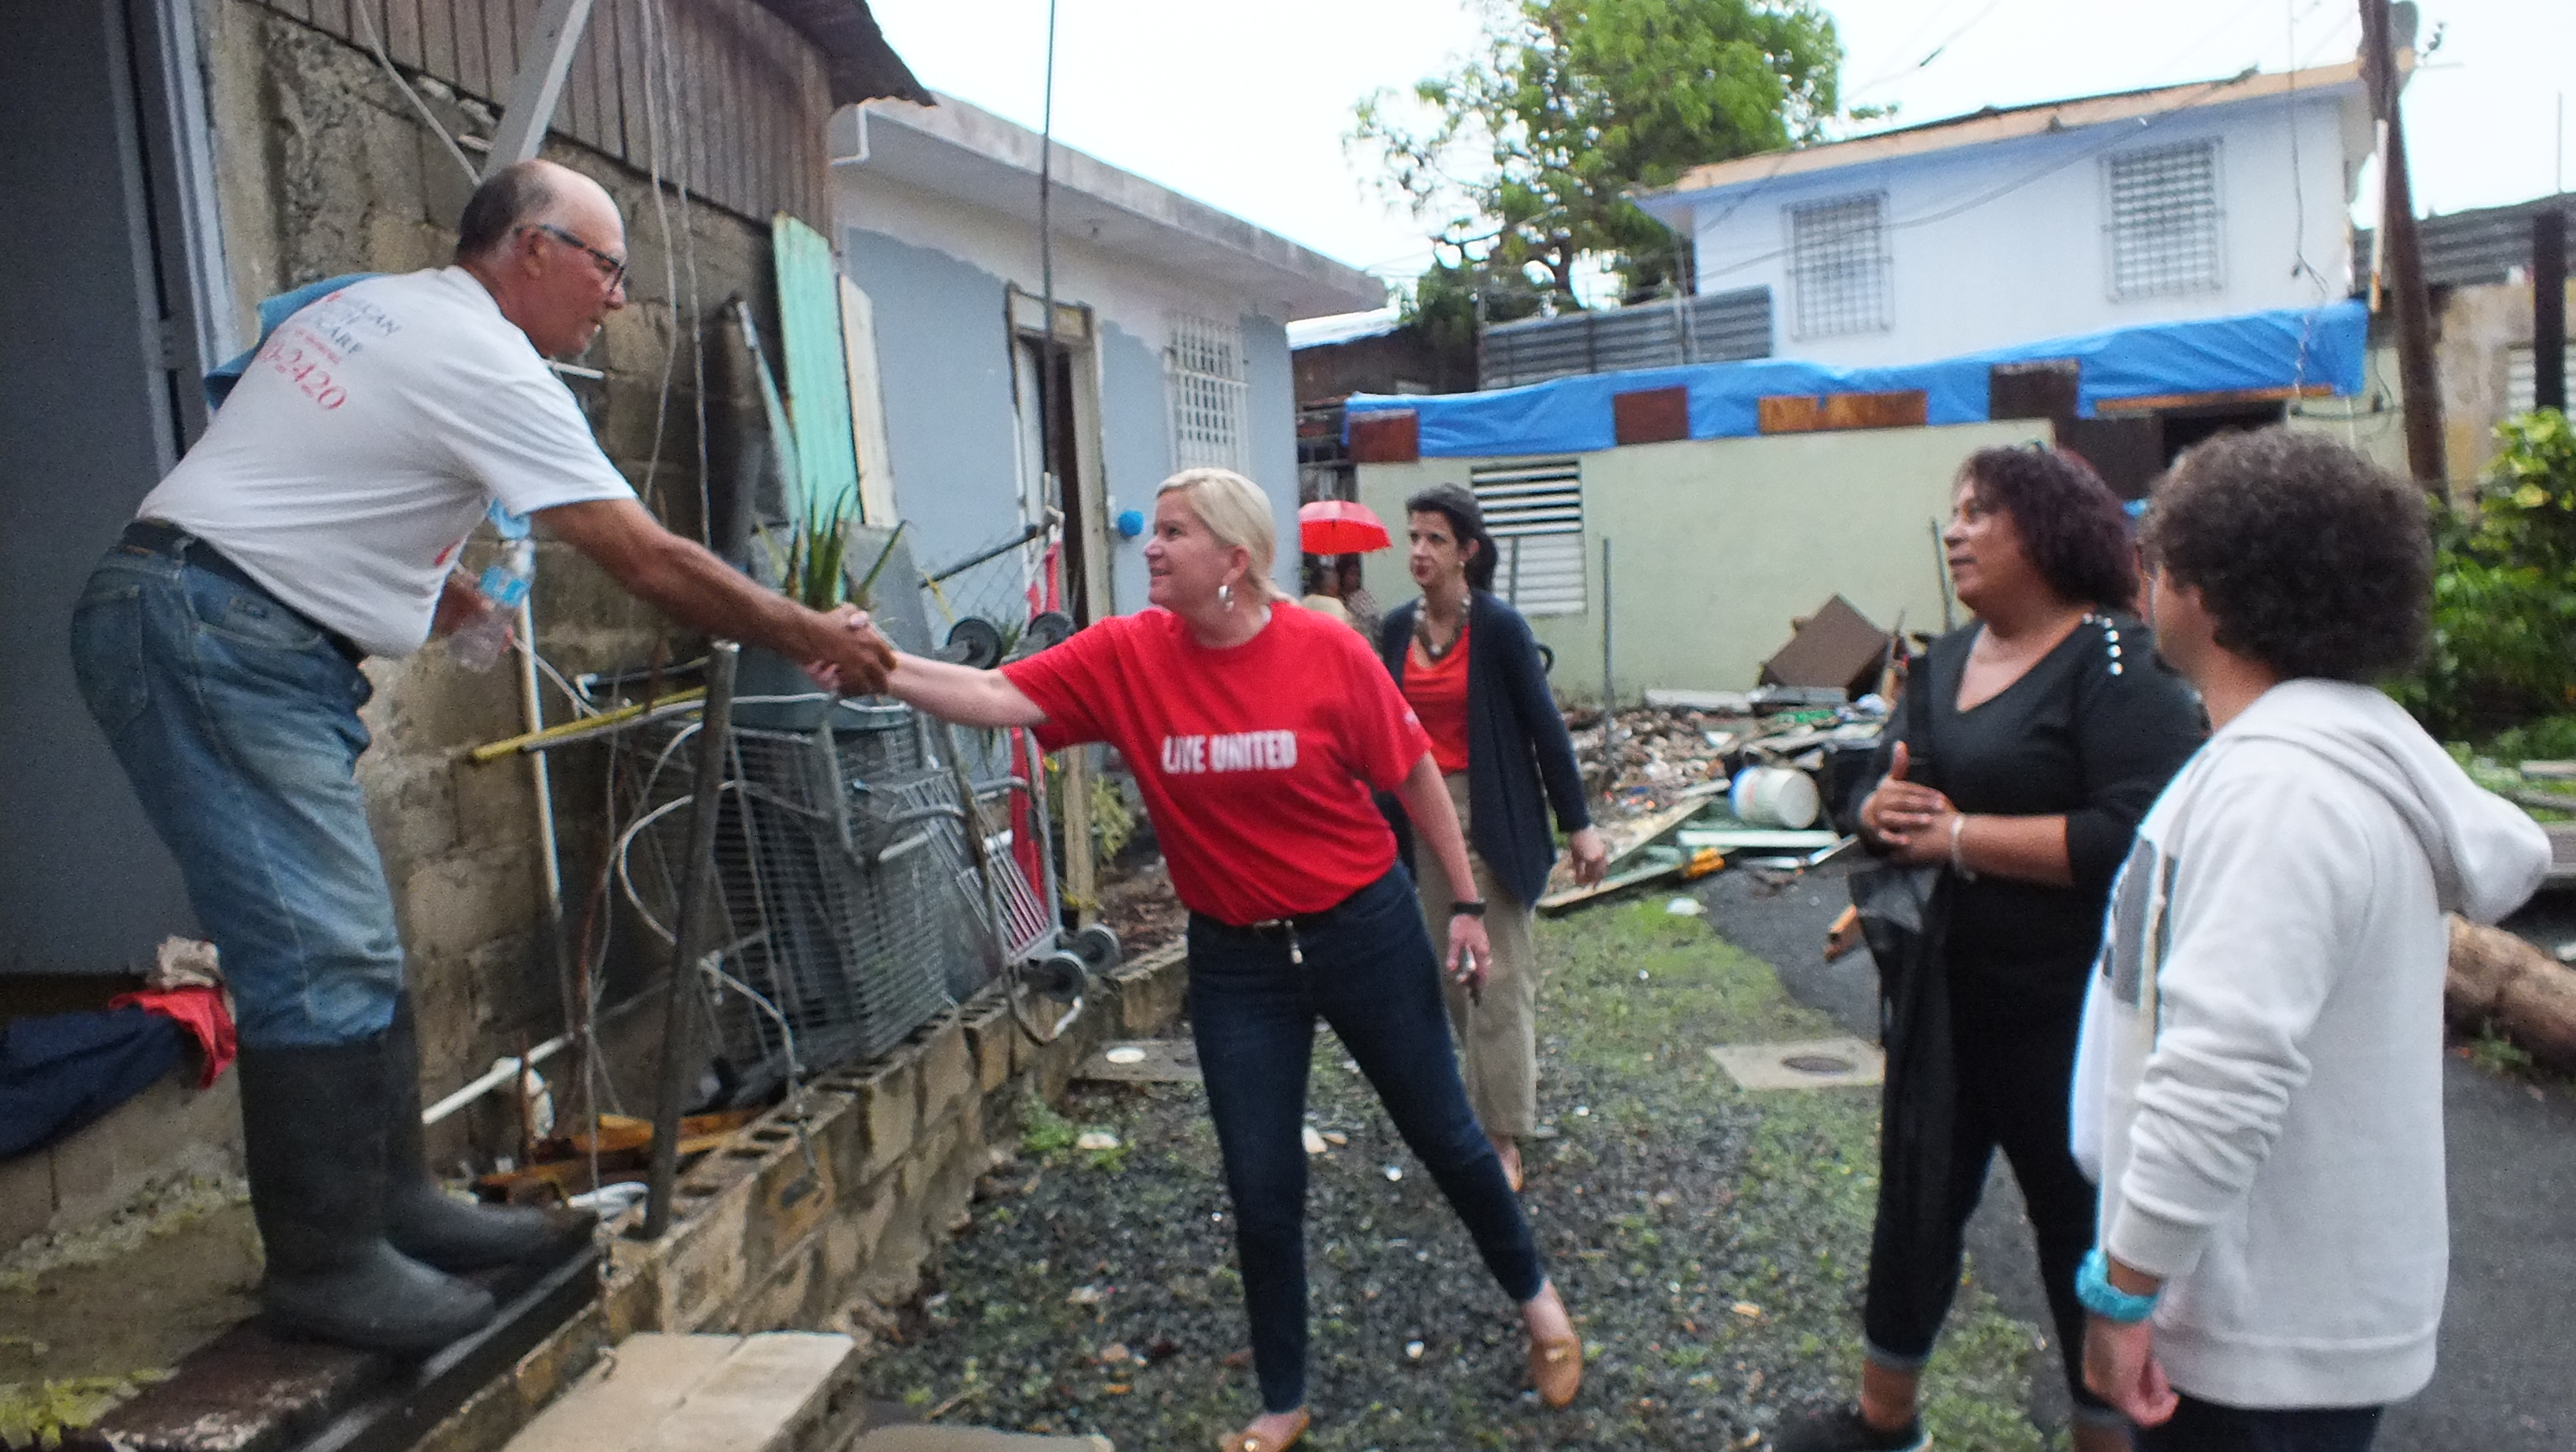 Witness how local United Ways are bringing their communities together so they can move forward in the wake of the storm.